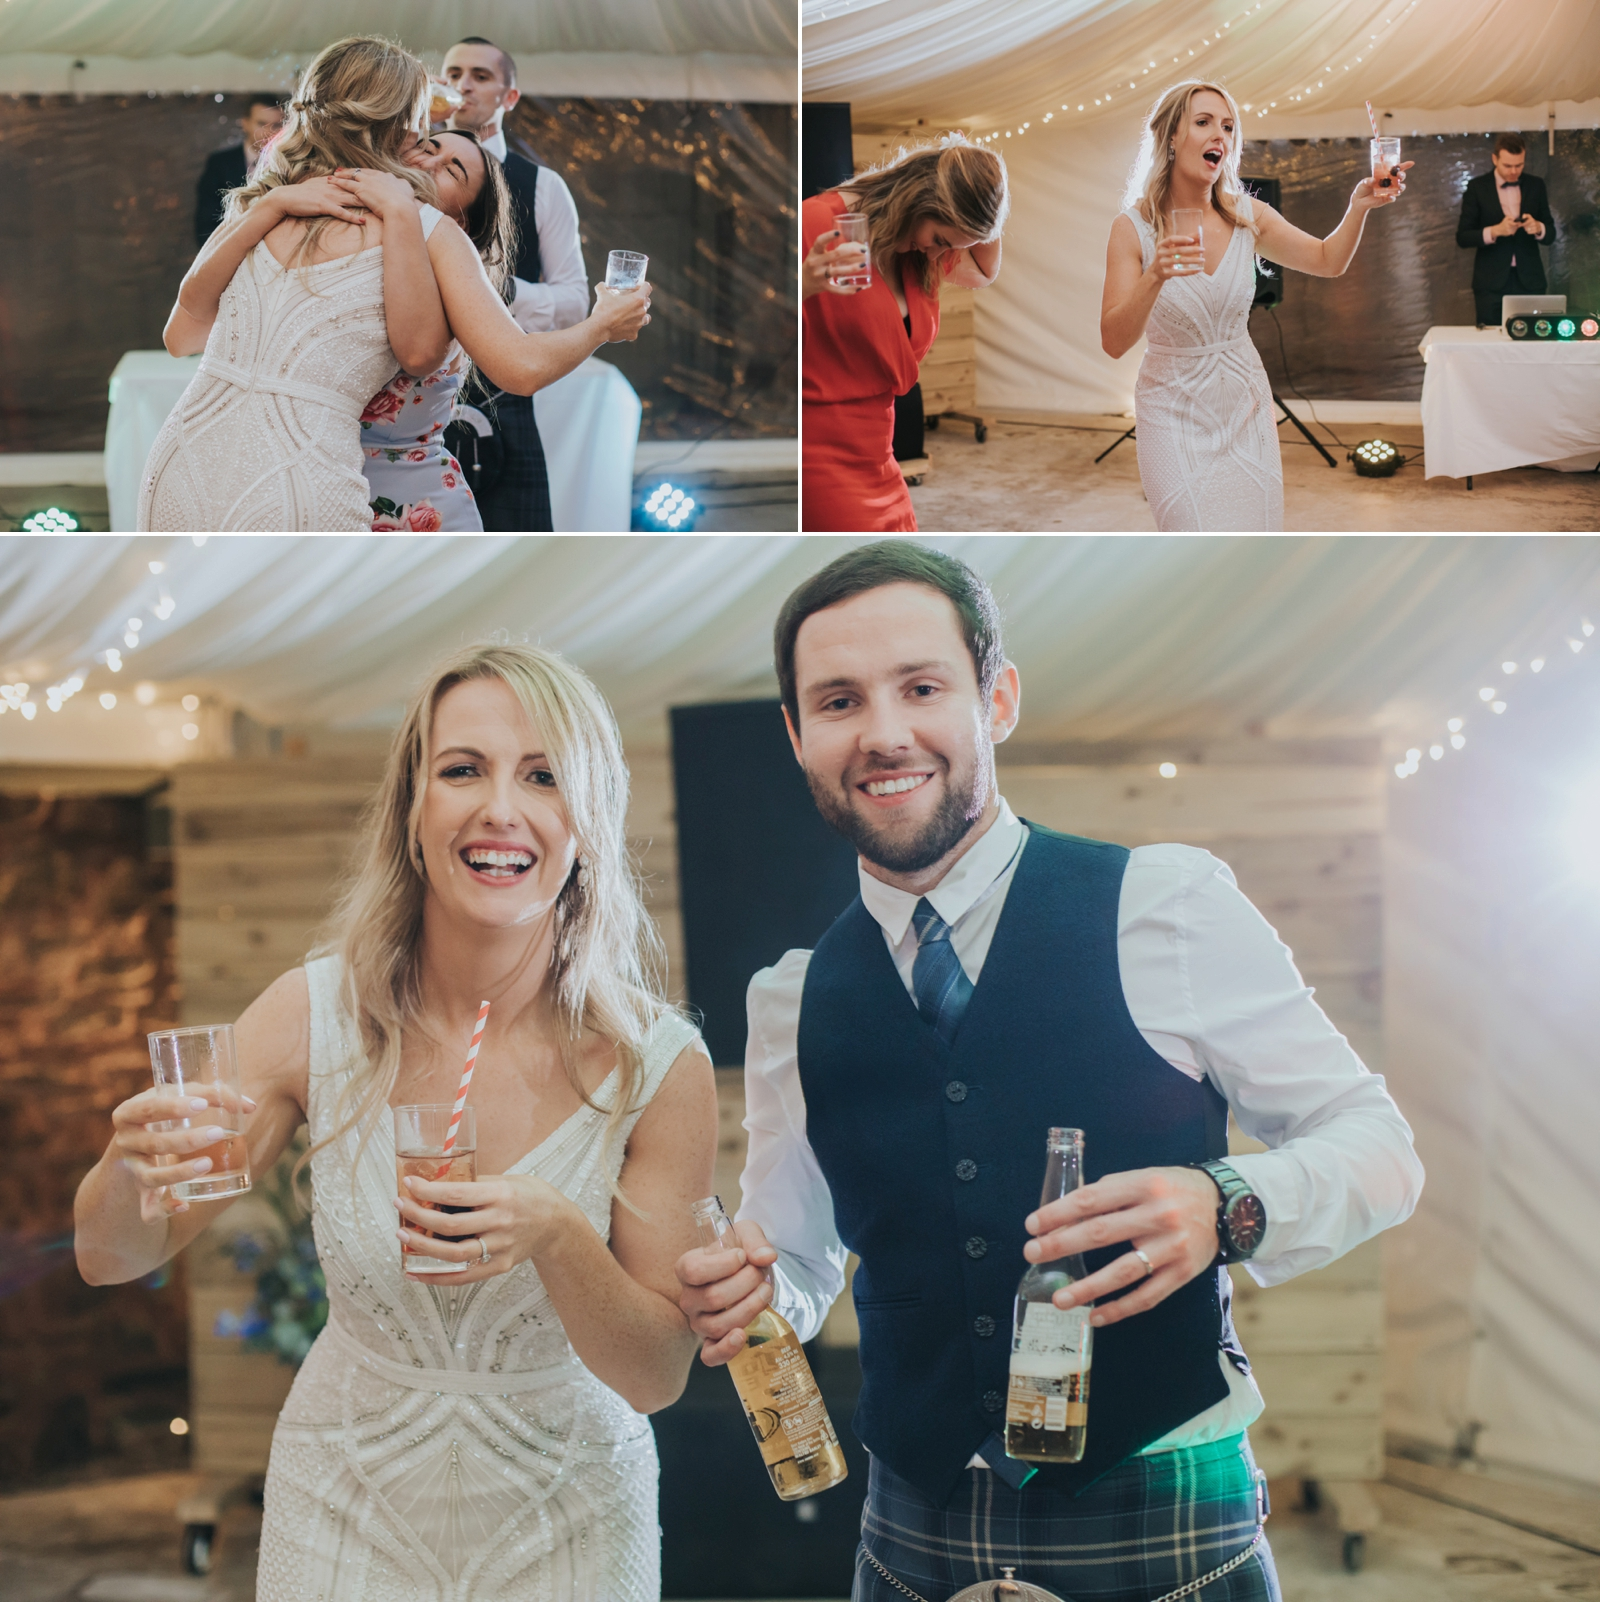 cow-shed-crail-rustic-wedding-gemma-andy-loraine-ross-photographygemma-andy-wedding-1014.jpg